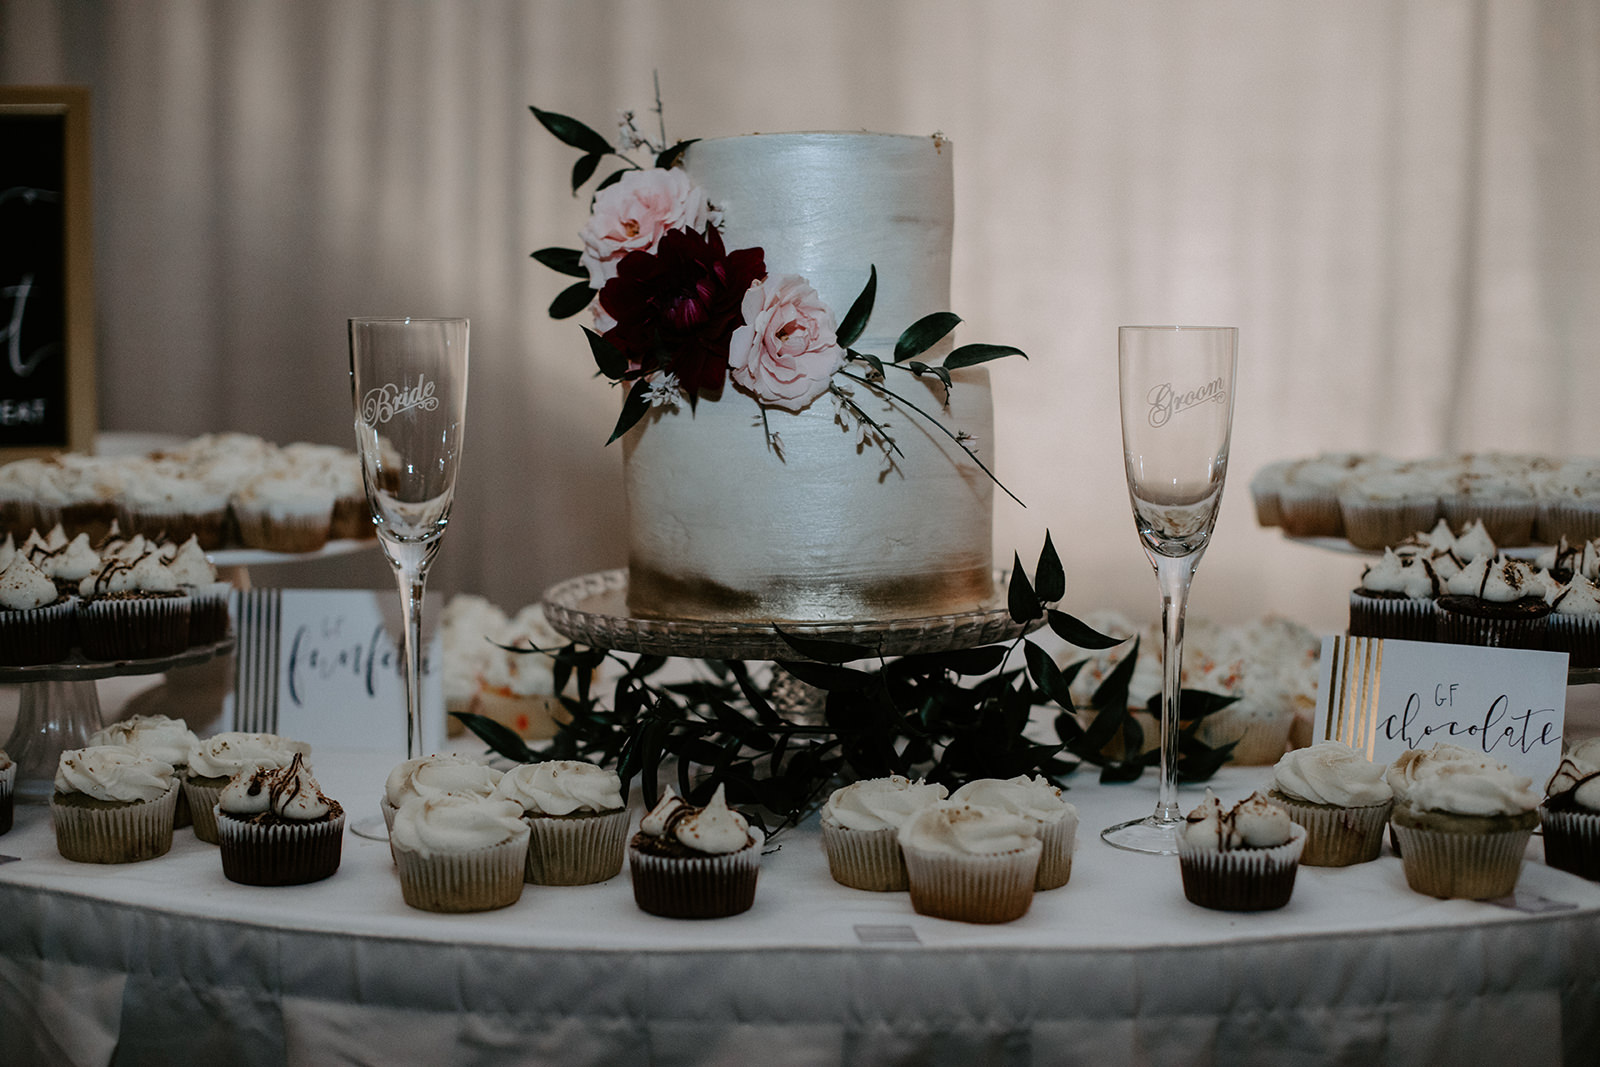 Close up of weddingcake and cupcakes with two wine glasses